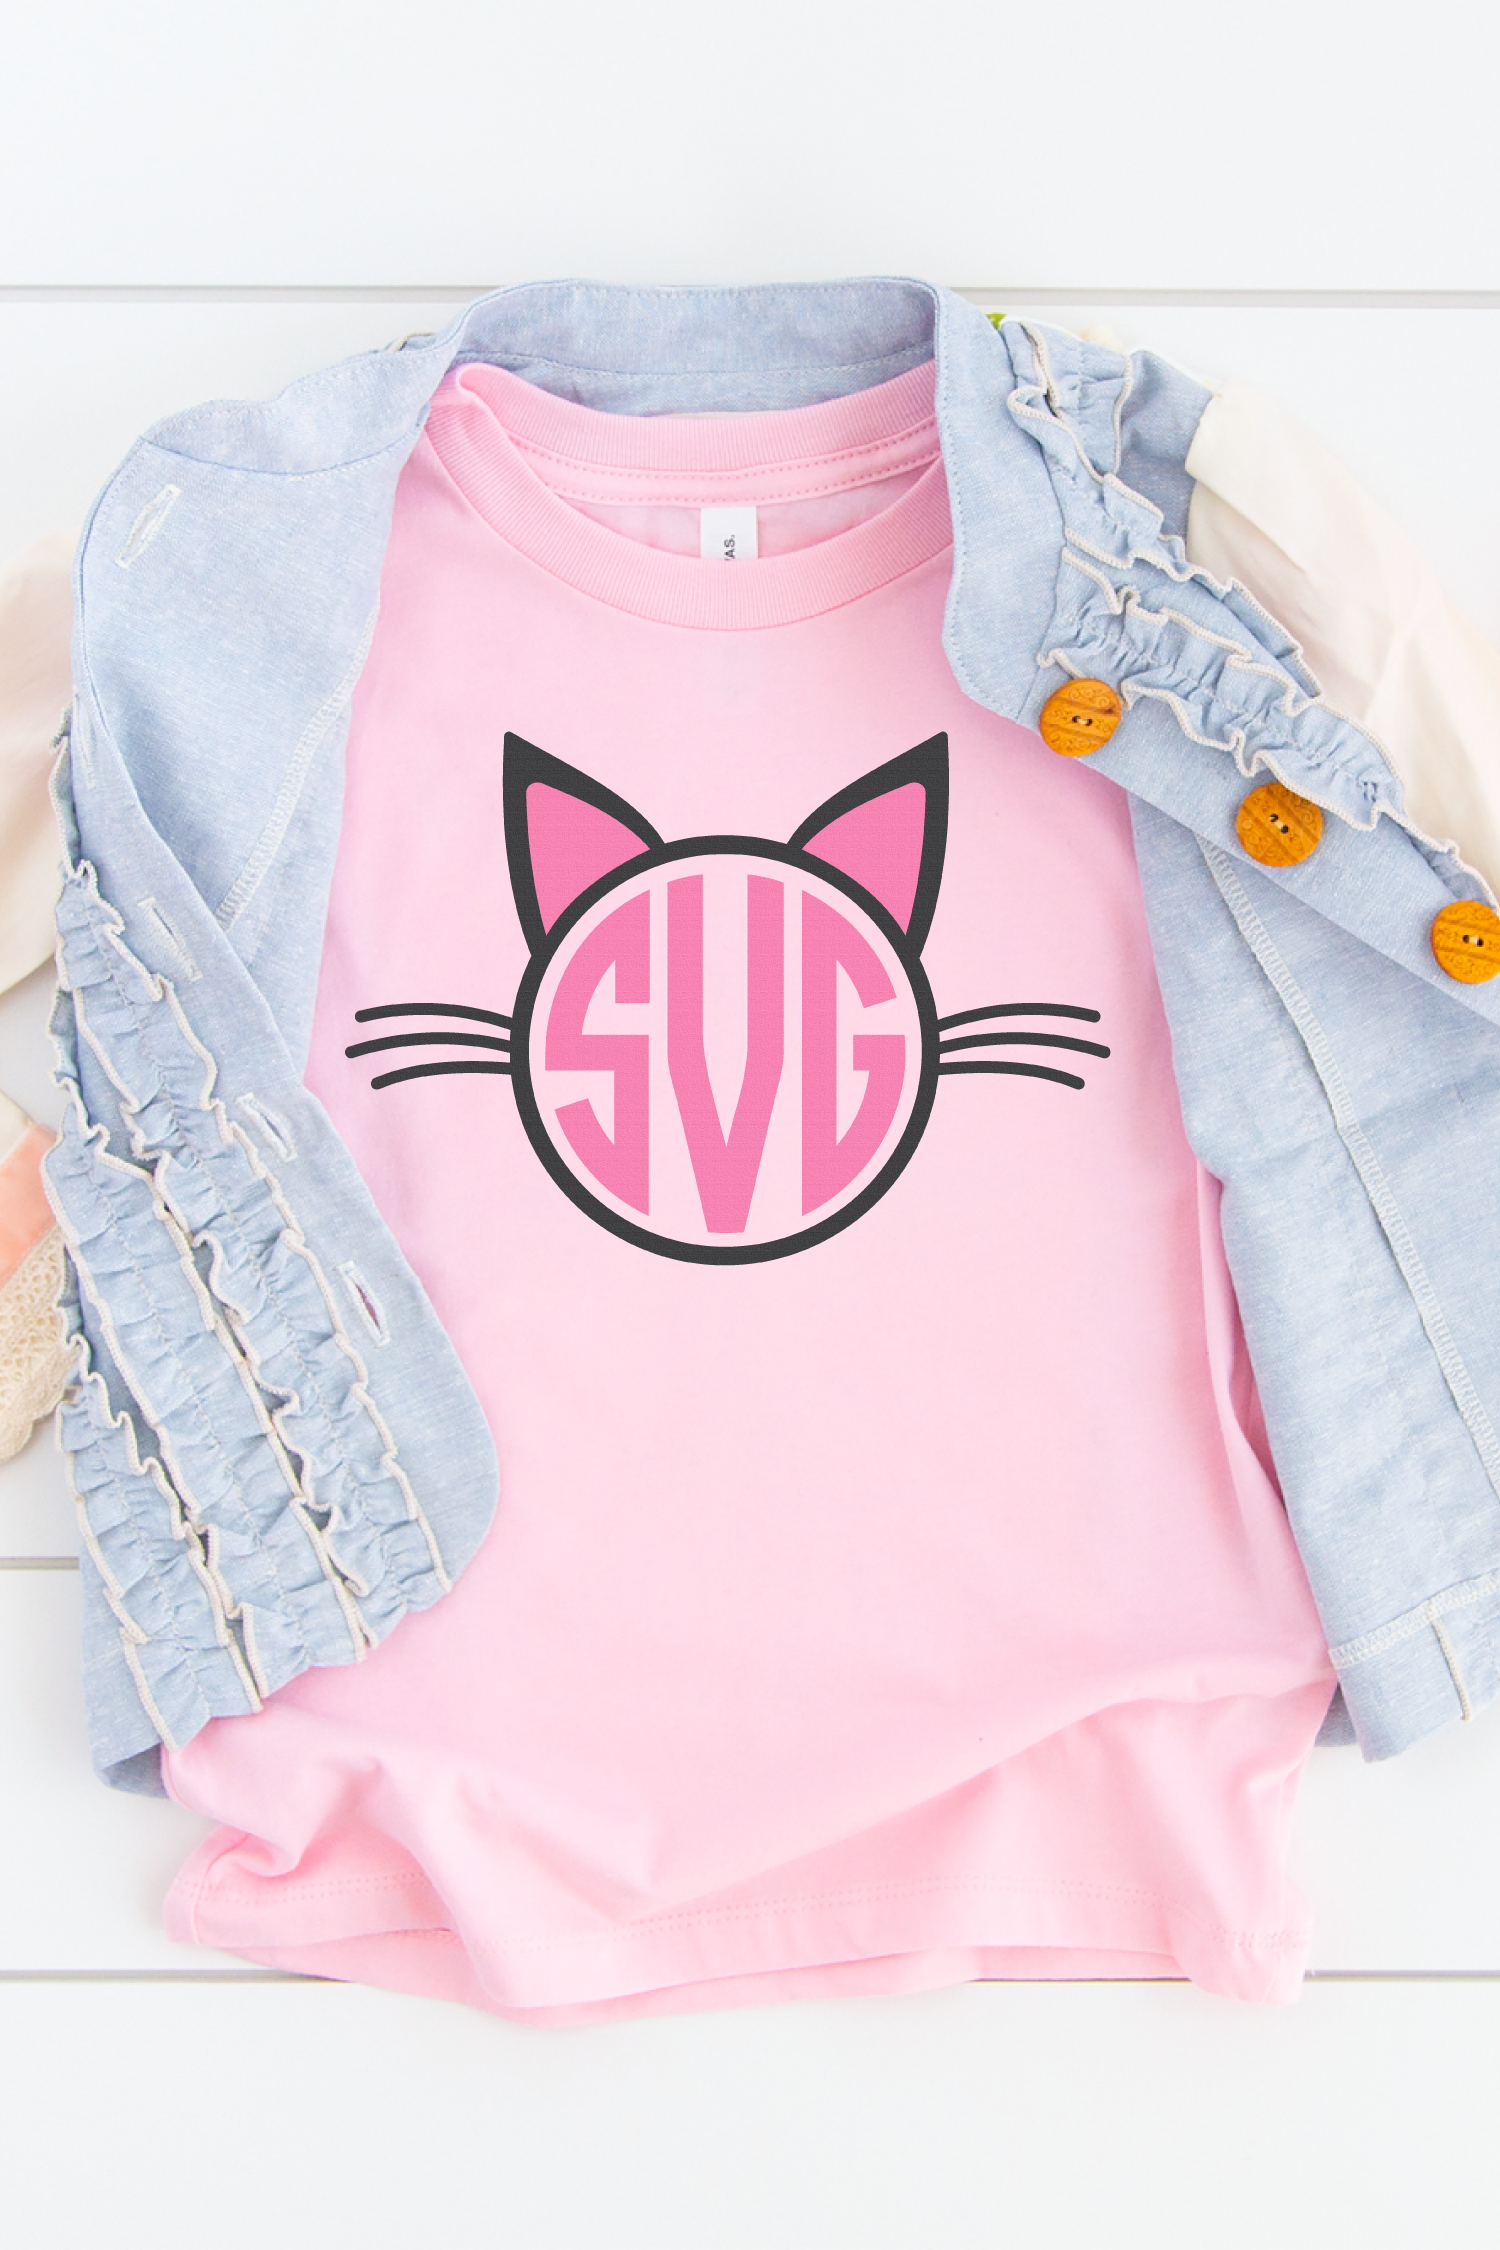 Cat monogram on pink kid's shirt